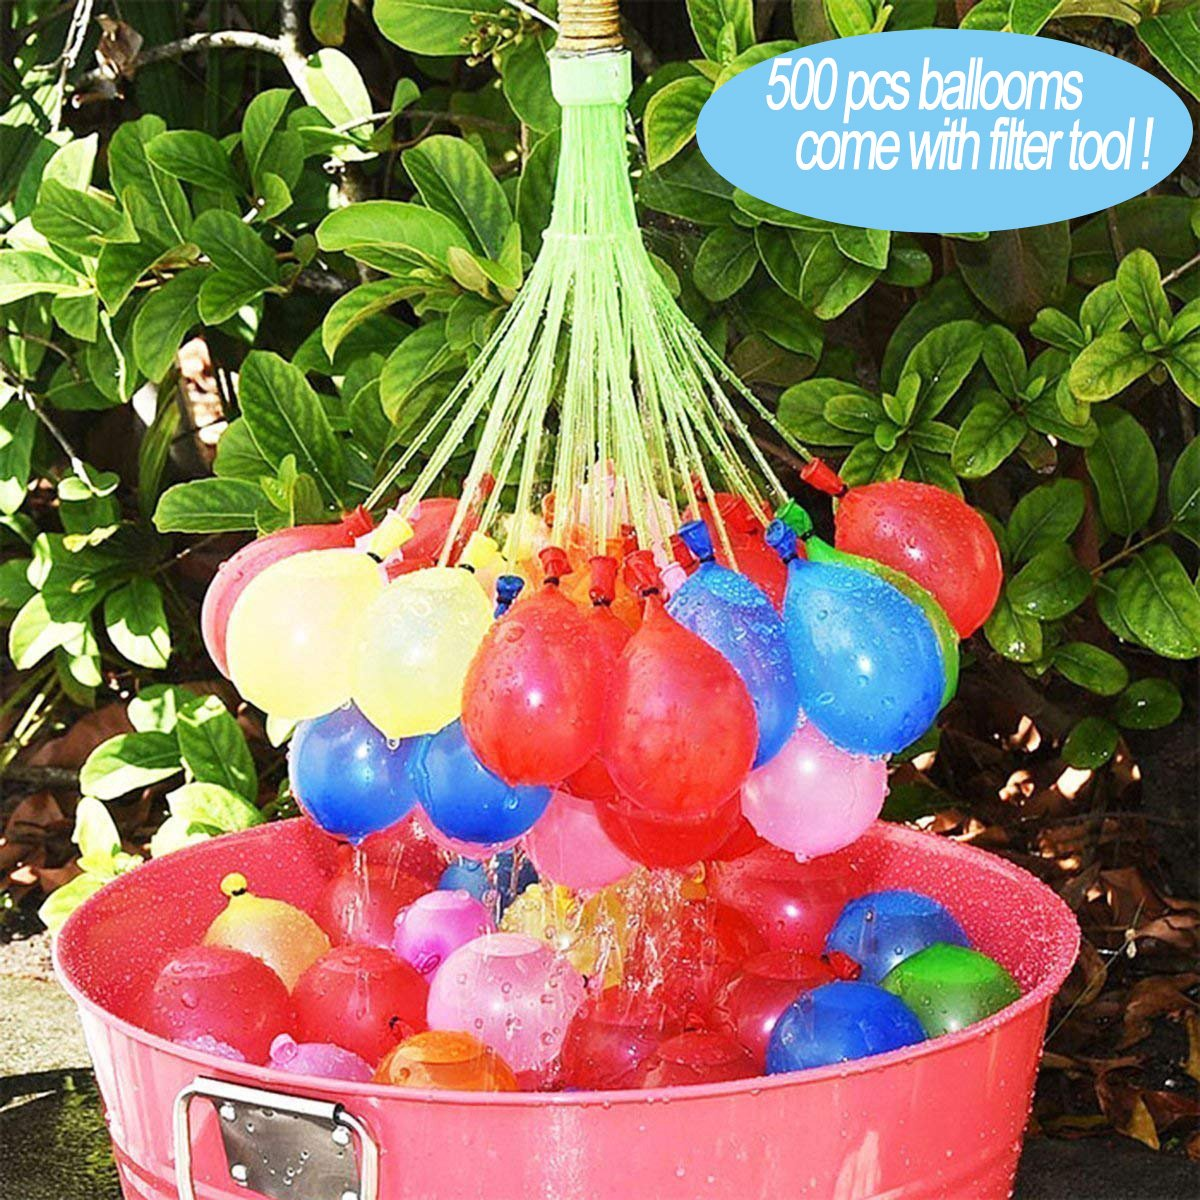 URUNIQ 111/500/1000 Pieces Water Bomb Toys, Water Bomb Quick Self Closing Water Balloons Seal Loading in 60 Seconds Suitable for Water Feature, Play in Pool, Summer Must-Haves, Random Colors (1000)